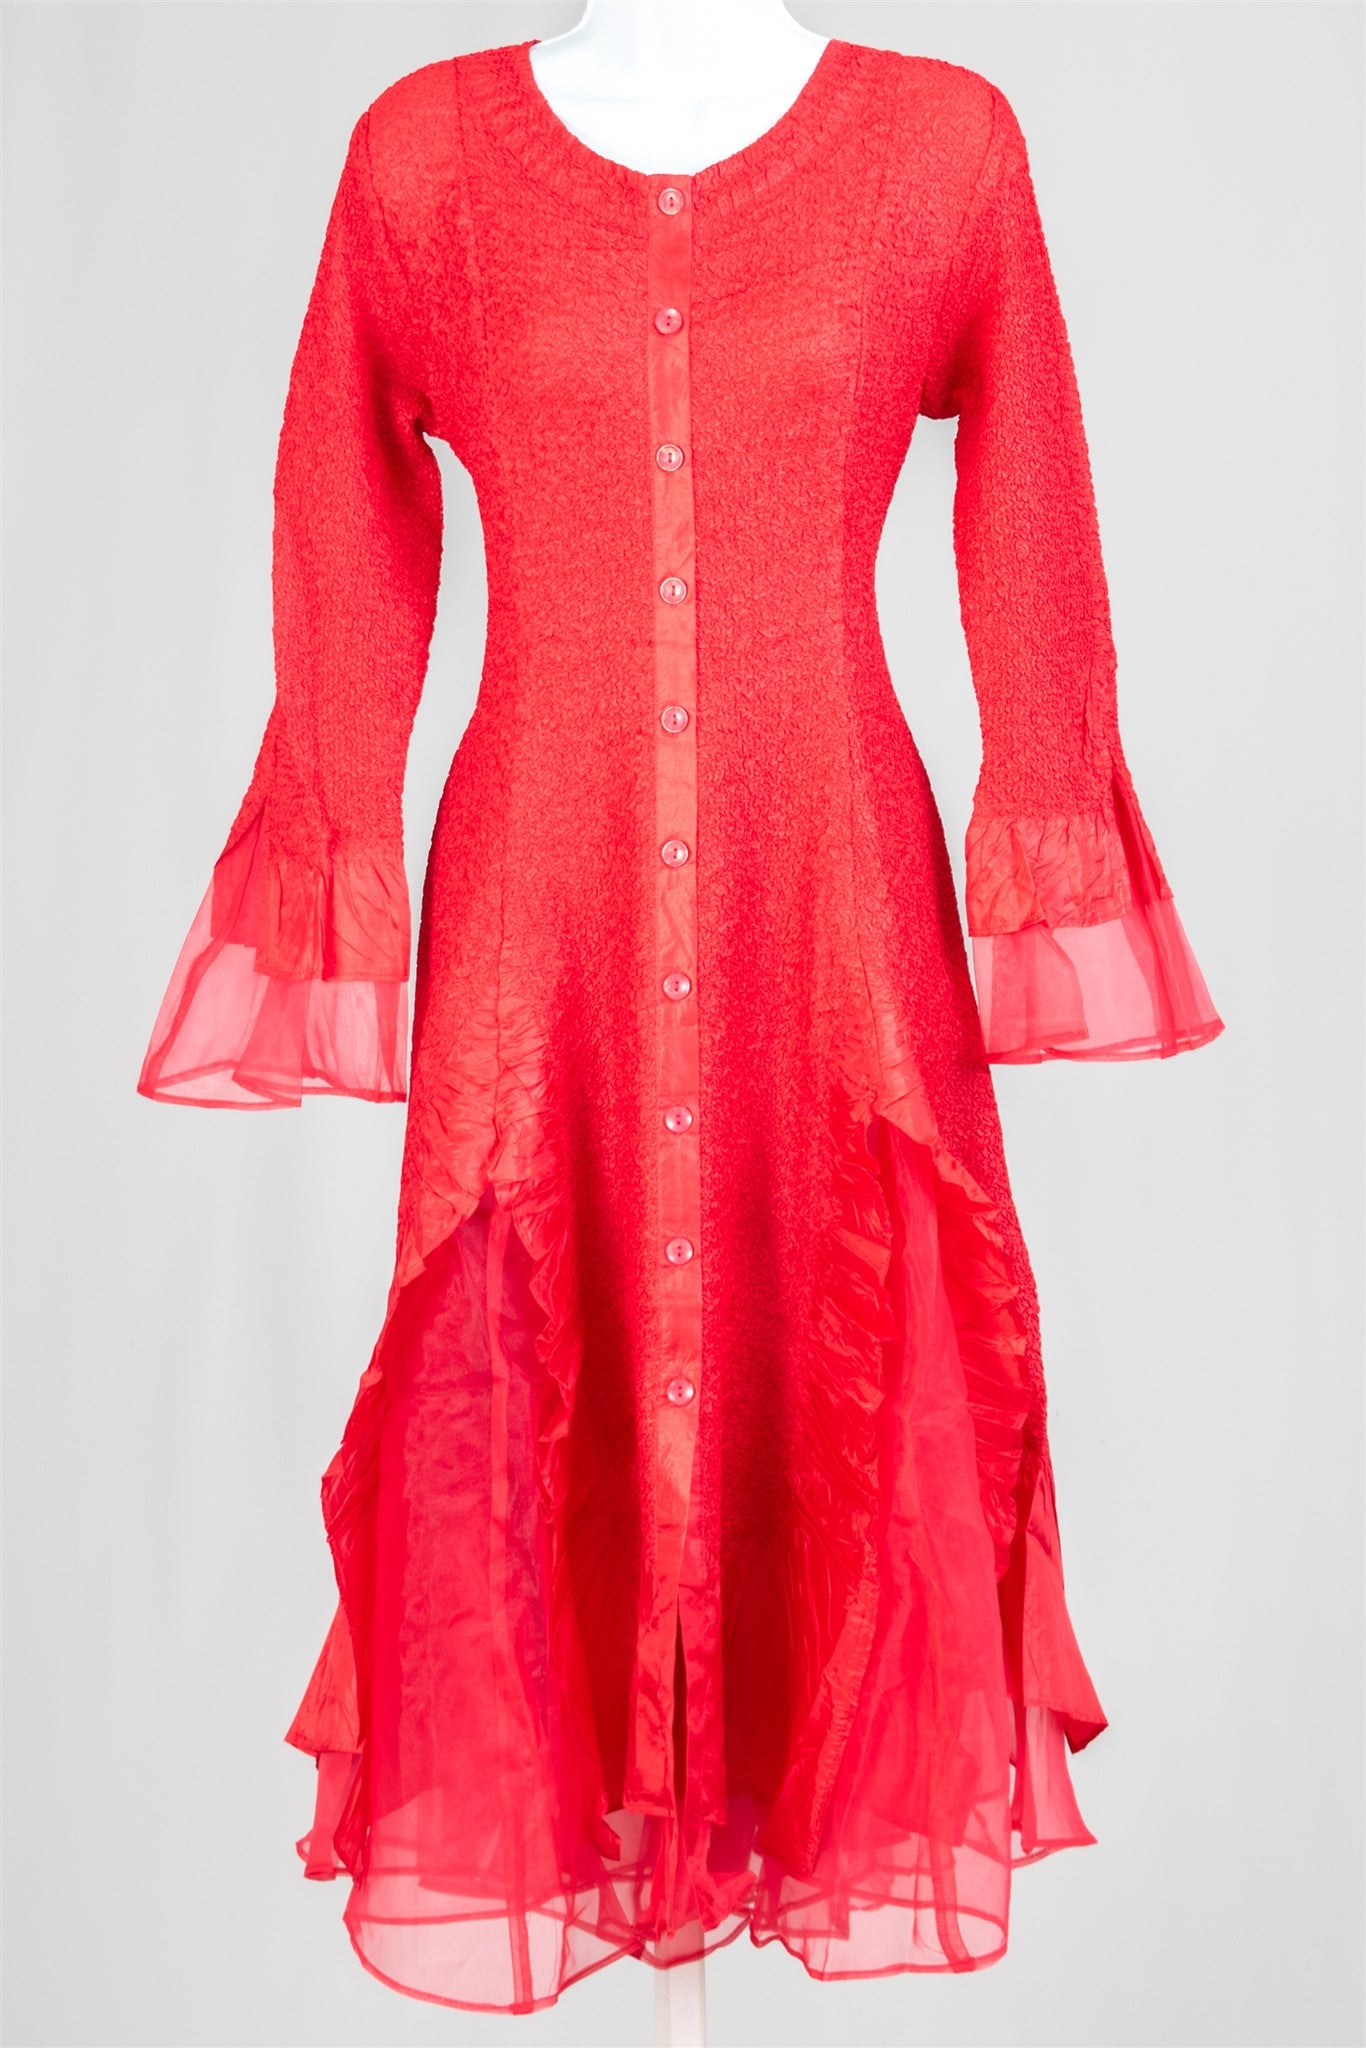 Jerry T Dress SR113-Red - Church Suits For Less